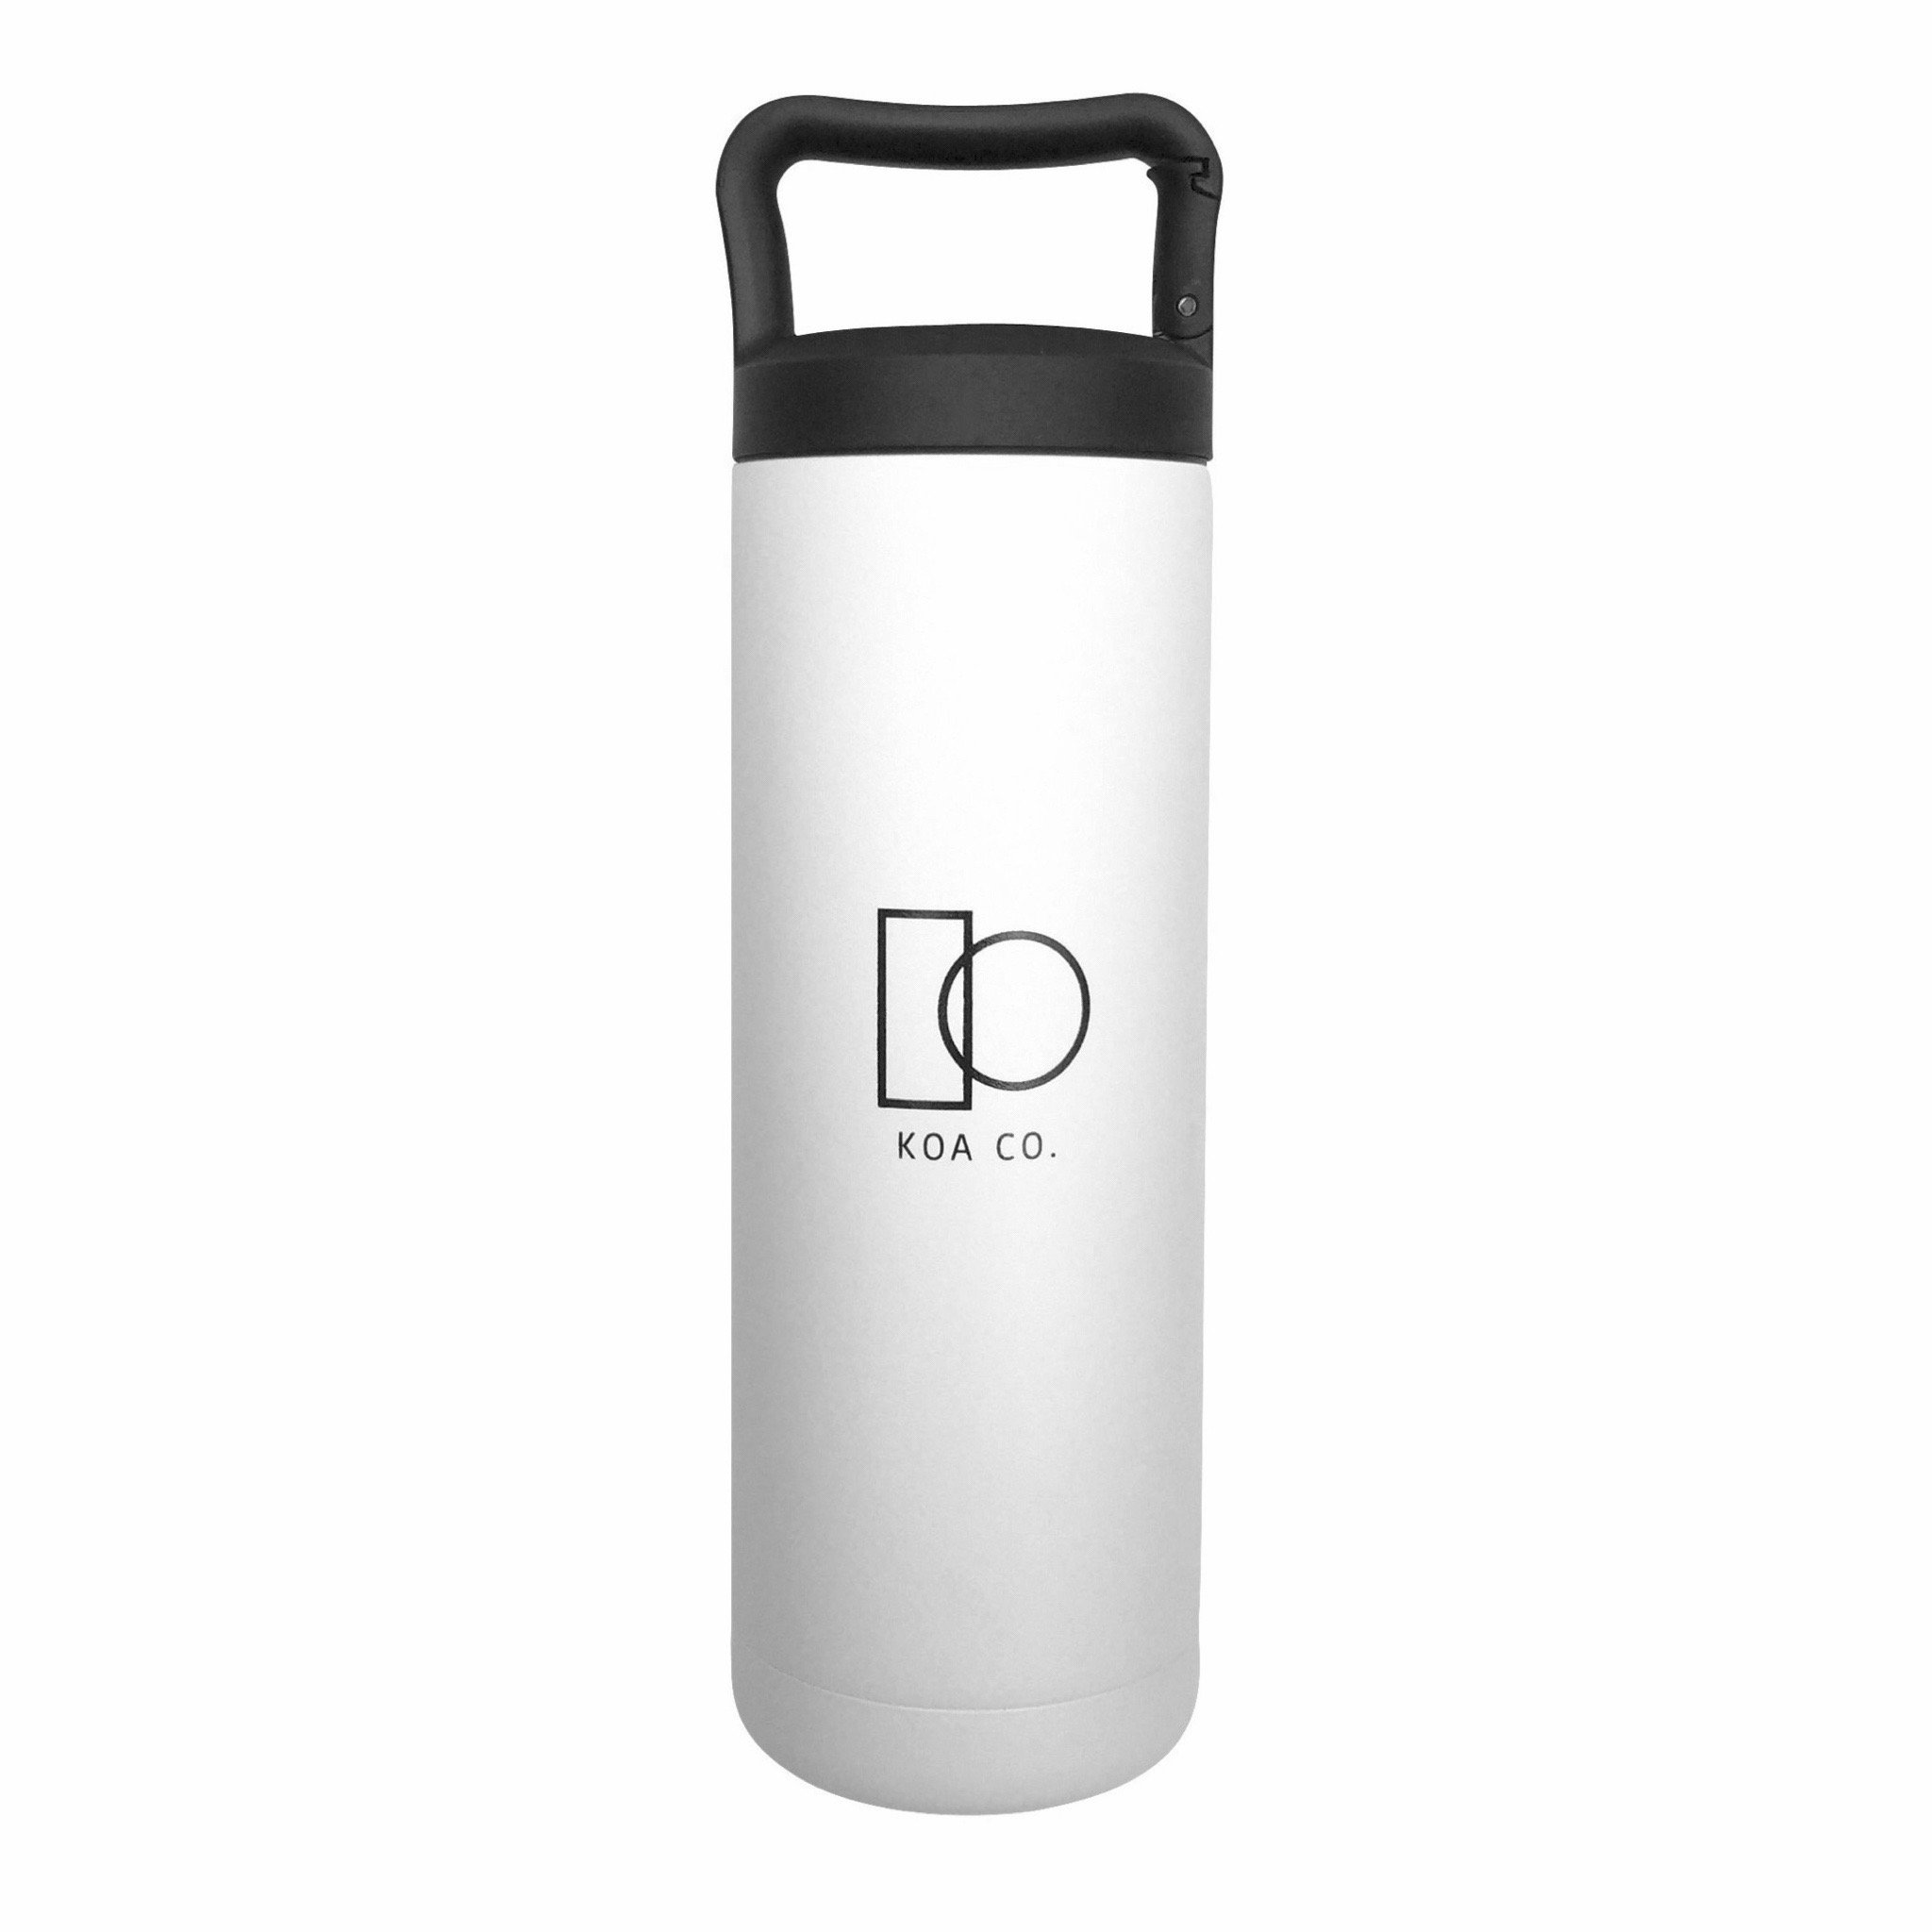 Vacuum Insulated Double Wall Stainless Steel Hydro Water Bottle   Eco-Friendly, BPA-Free, Sweat-Proof, Leak-Proof   Travel, Camping, Hiking, Fitness, Adventure   (White, 20 oz.)